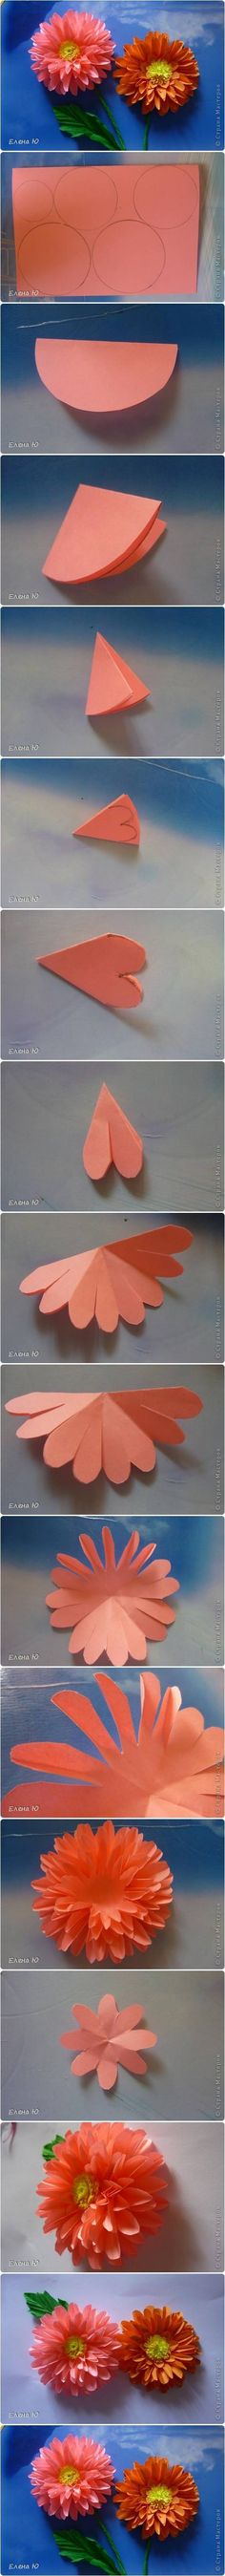 How to Make Paper Dahlias (Diy Paper Flowers) Handmade Flowers, Diy Flowers, Fabric Flowers, Flower Diy, Dahlia Flowers, Diy Paper, Paper Art, Paper Crafts, Hobbies And Crafts